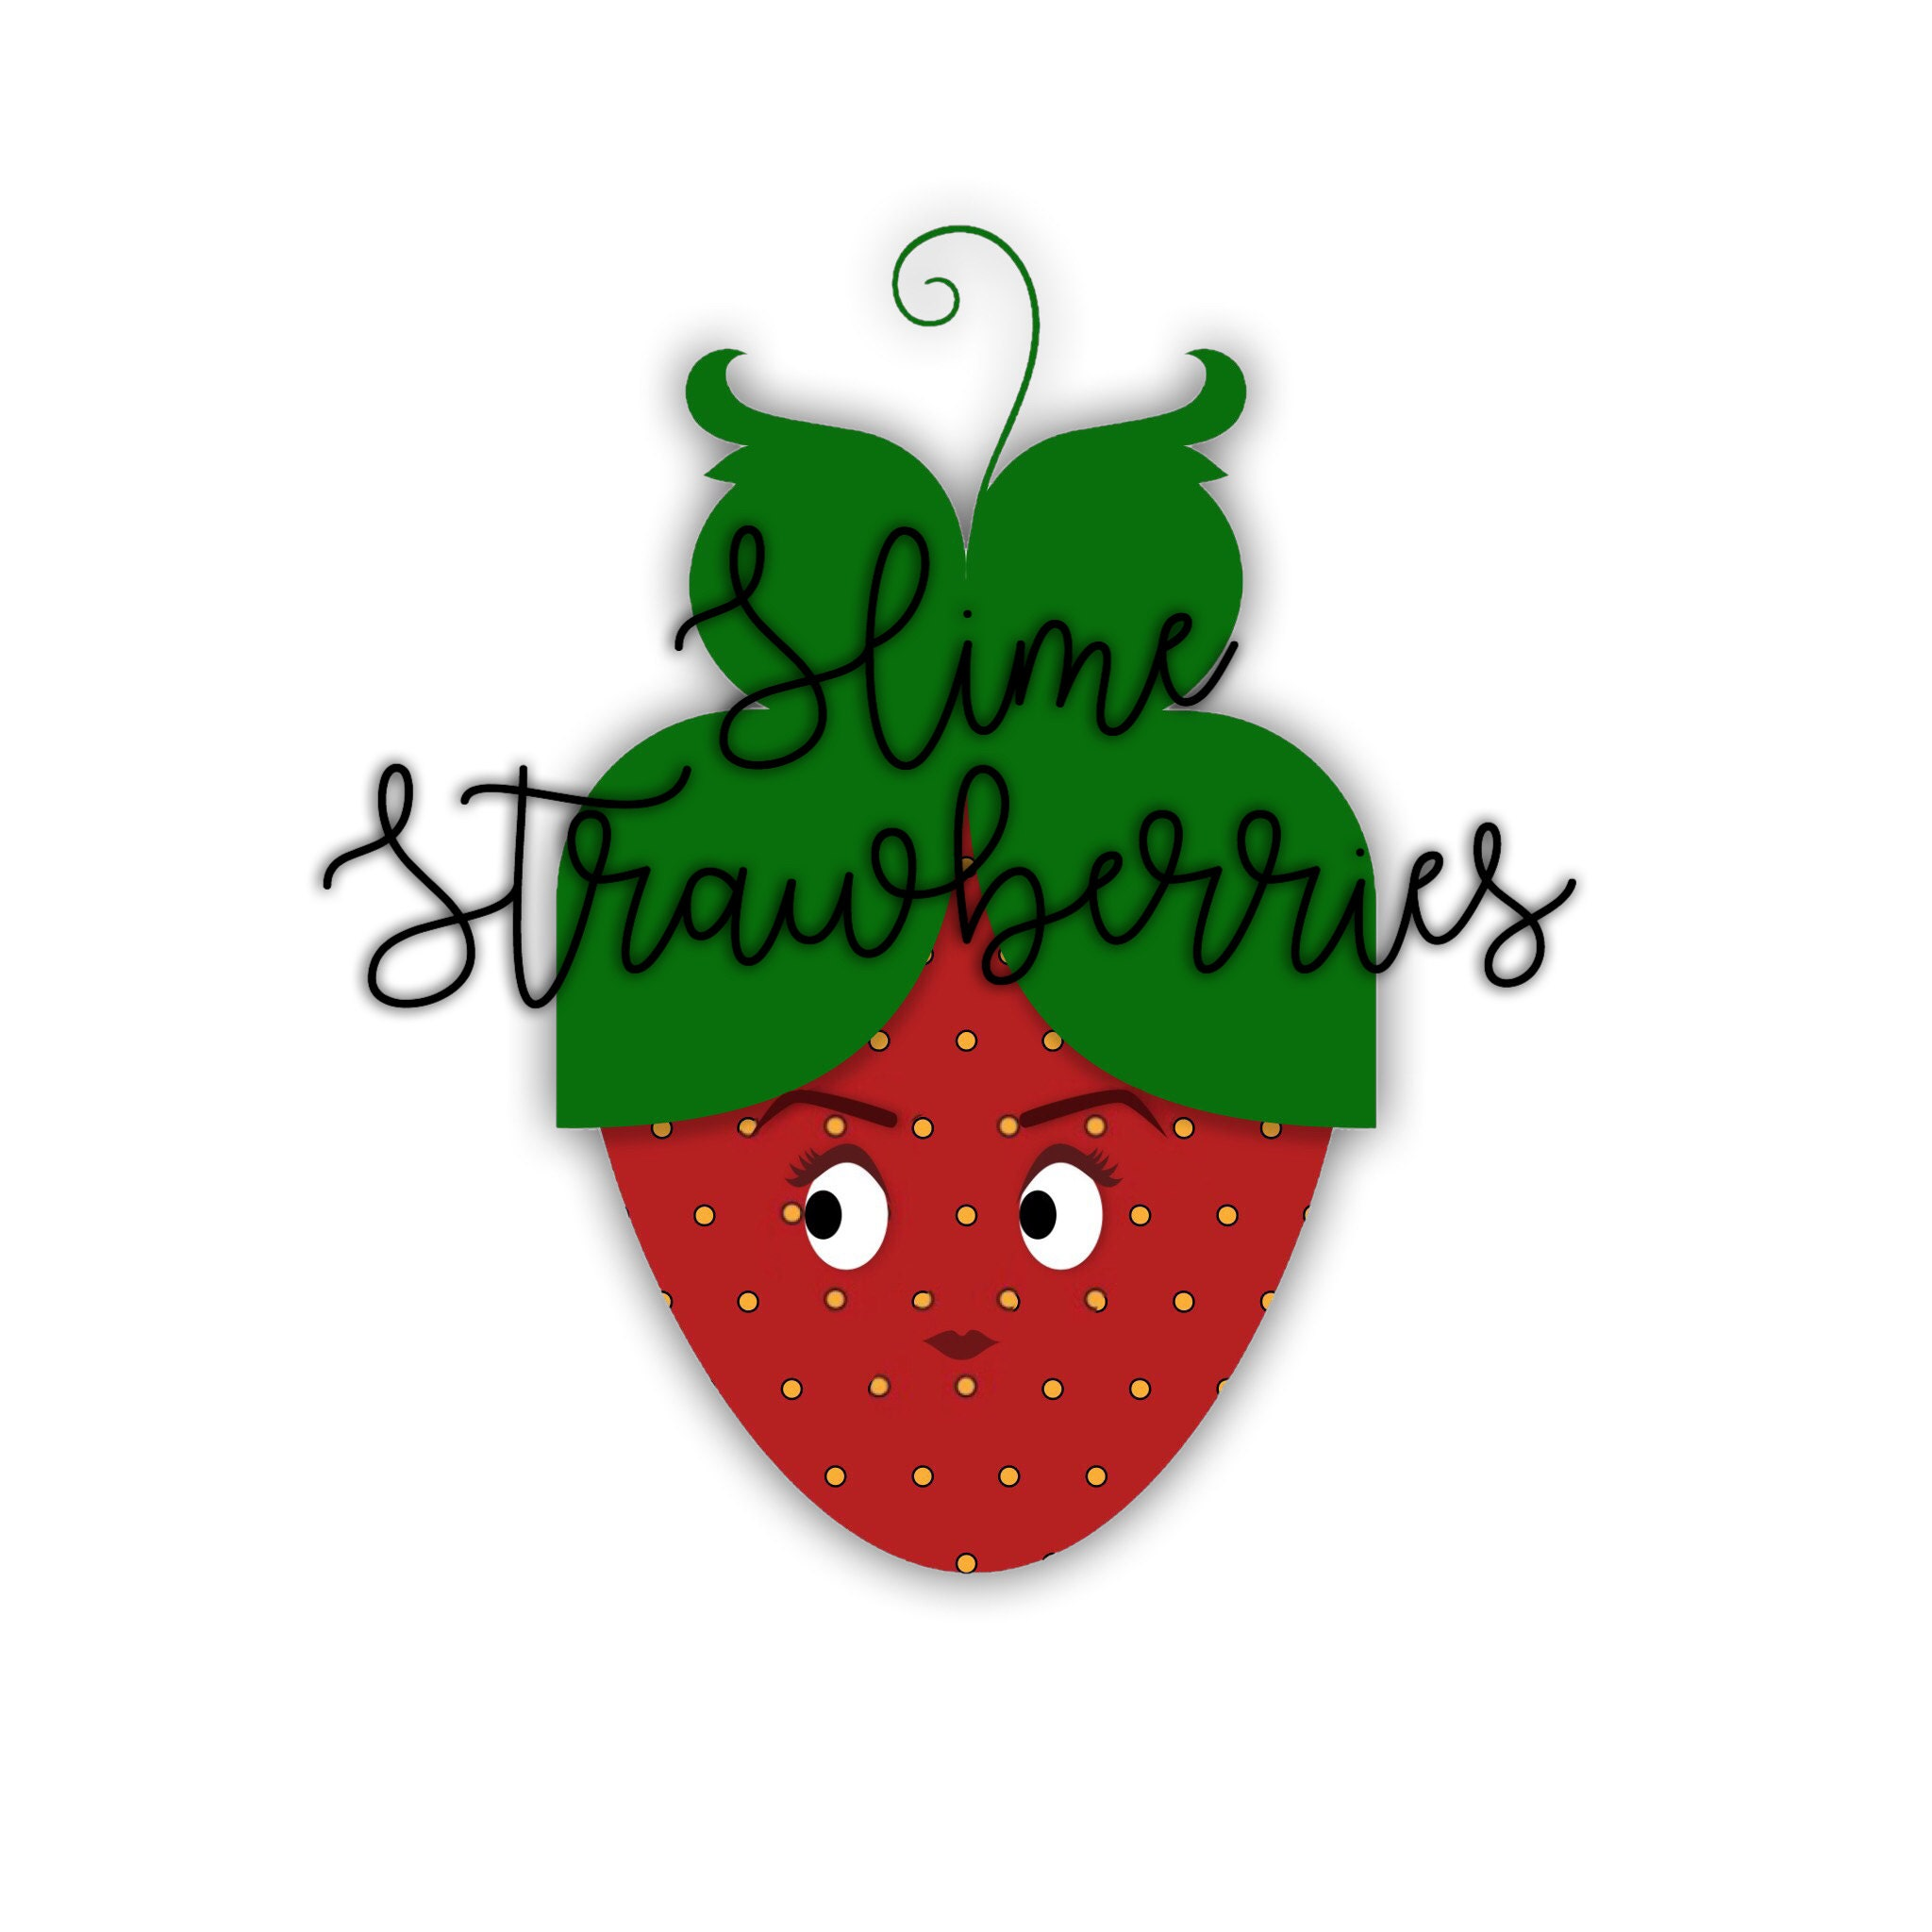 Slimestrawberries en Etsy